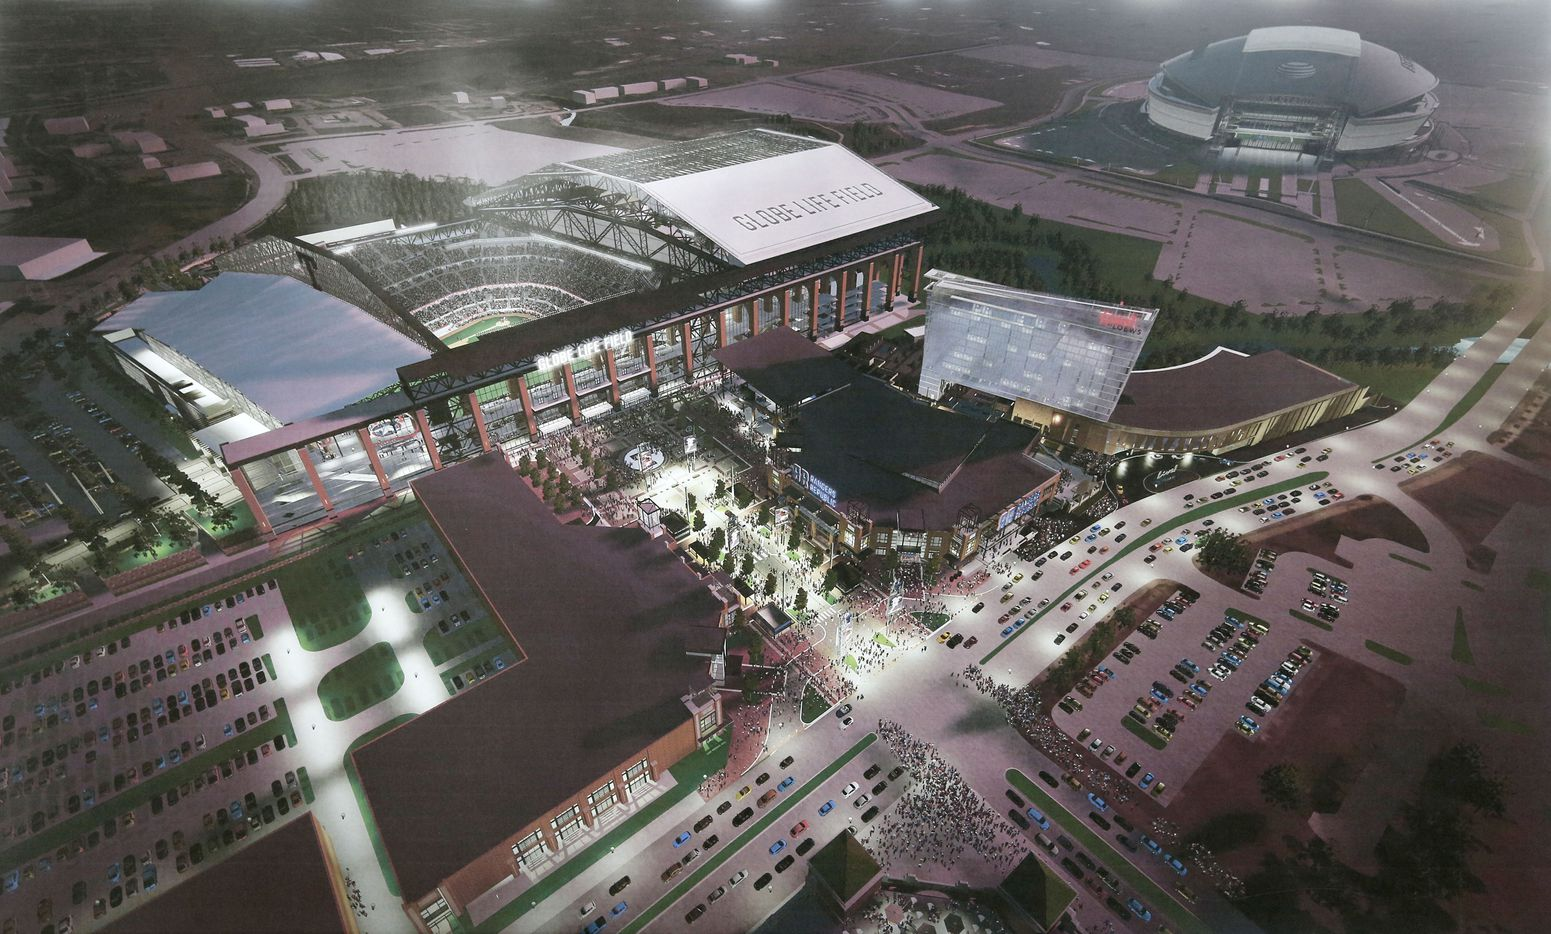 A rendering showing an aerial view of the new Globe Life Field with retractable roof and the Texas Live! entertainment complex adjacent to it.